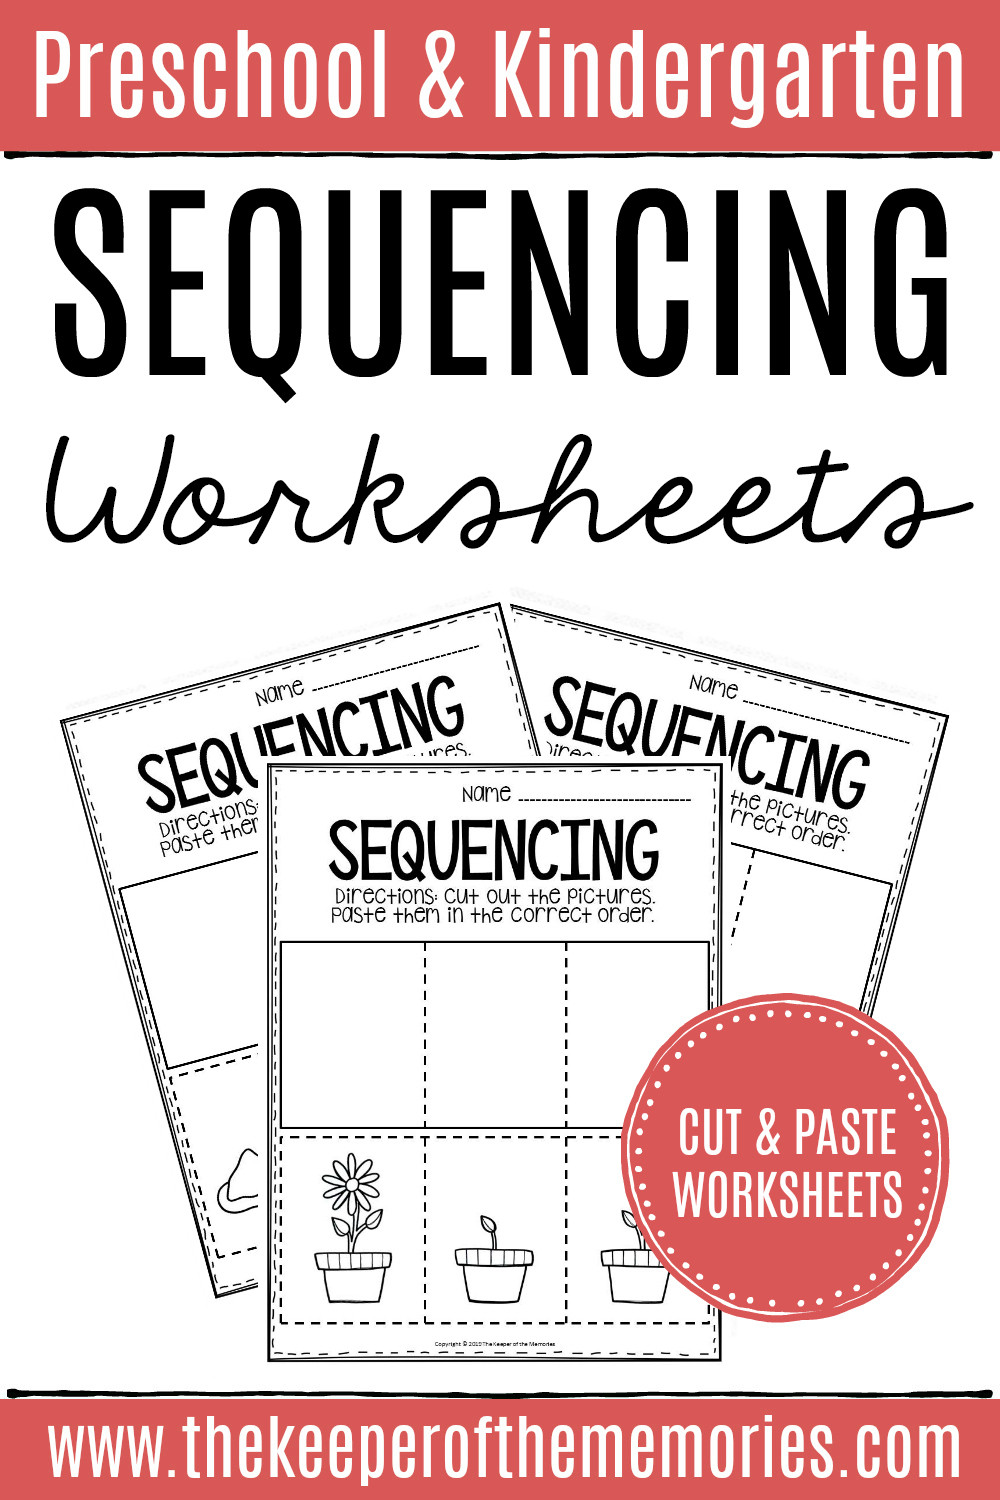 Sequencing Worksheets Kindergarten 3 Step Sequencing Worksheets the Keeper Of the Memories